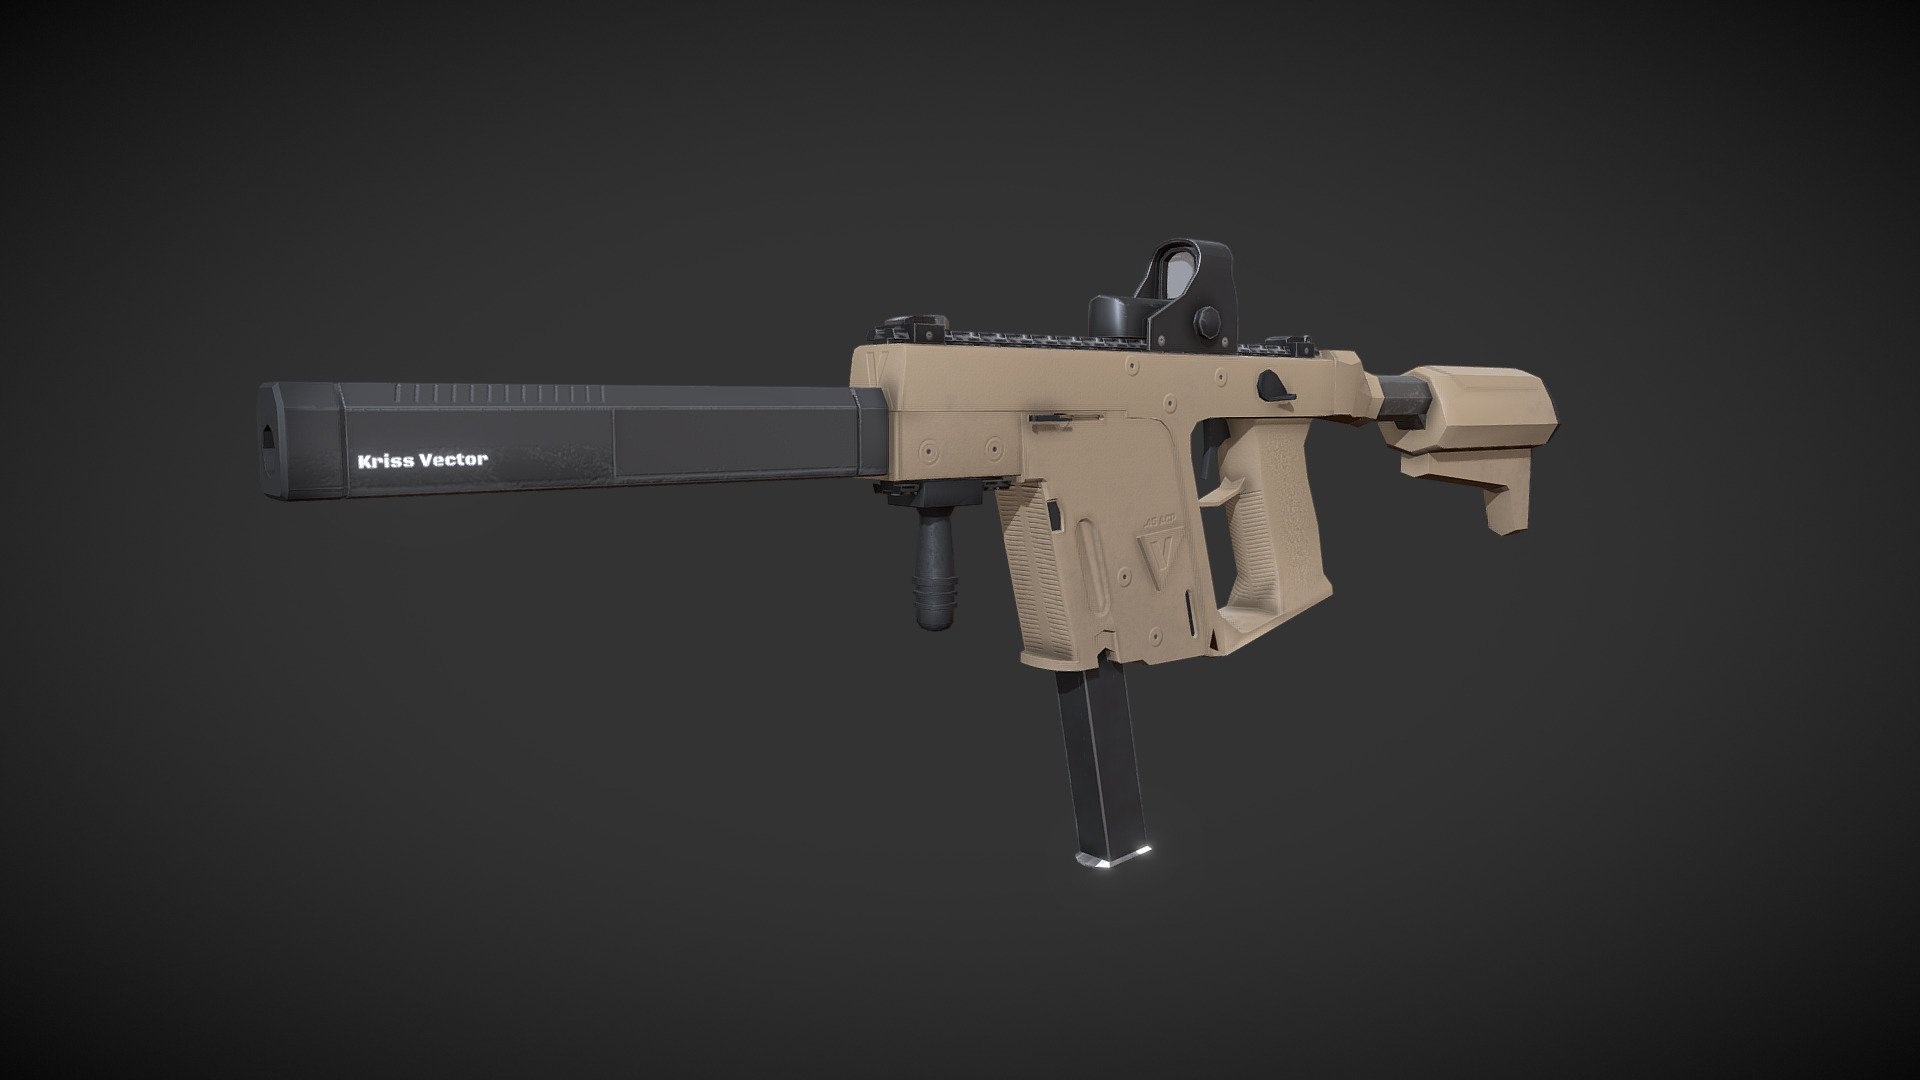 Kriss Vector 3d Model By Harley Rogers At Hrogers